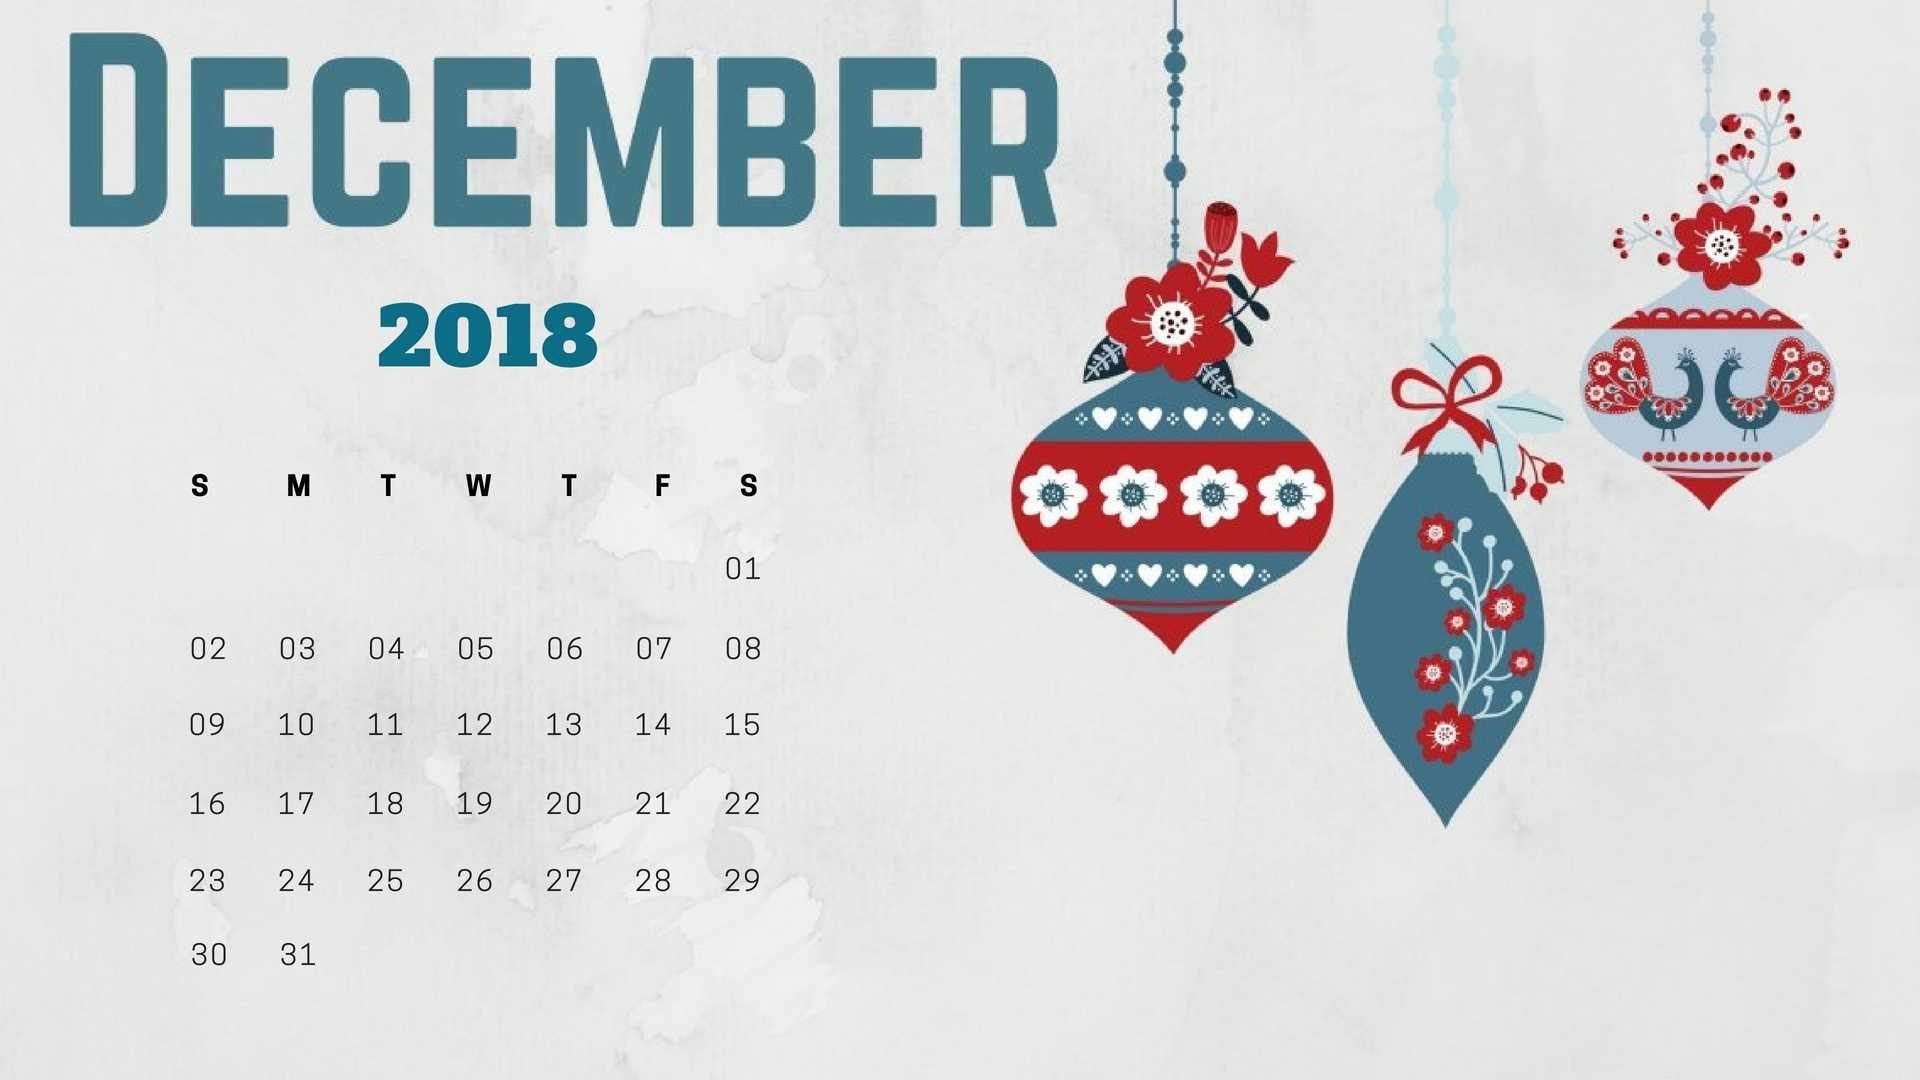 December 2018 Calendar Wallpaper for Desktop Background Laptop and ...